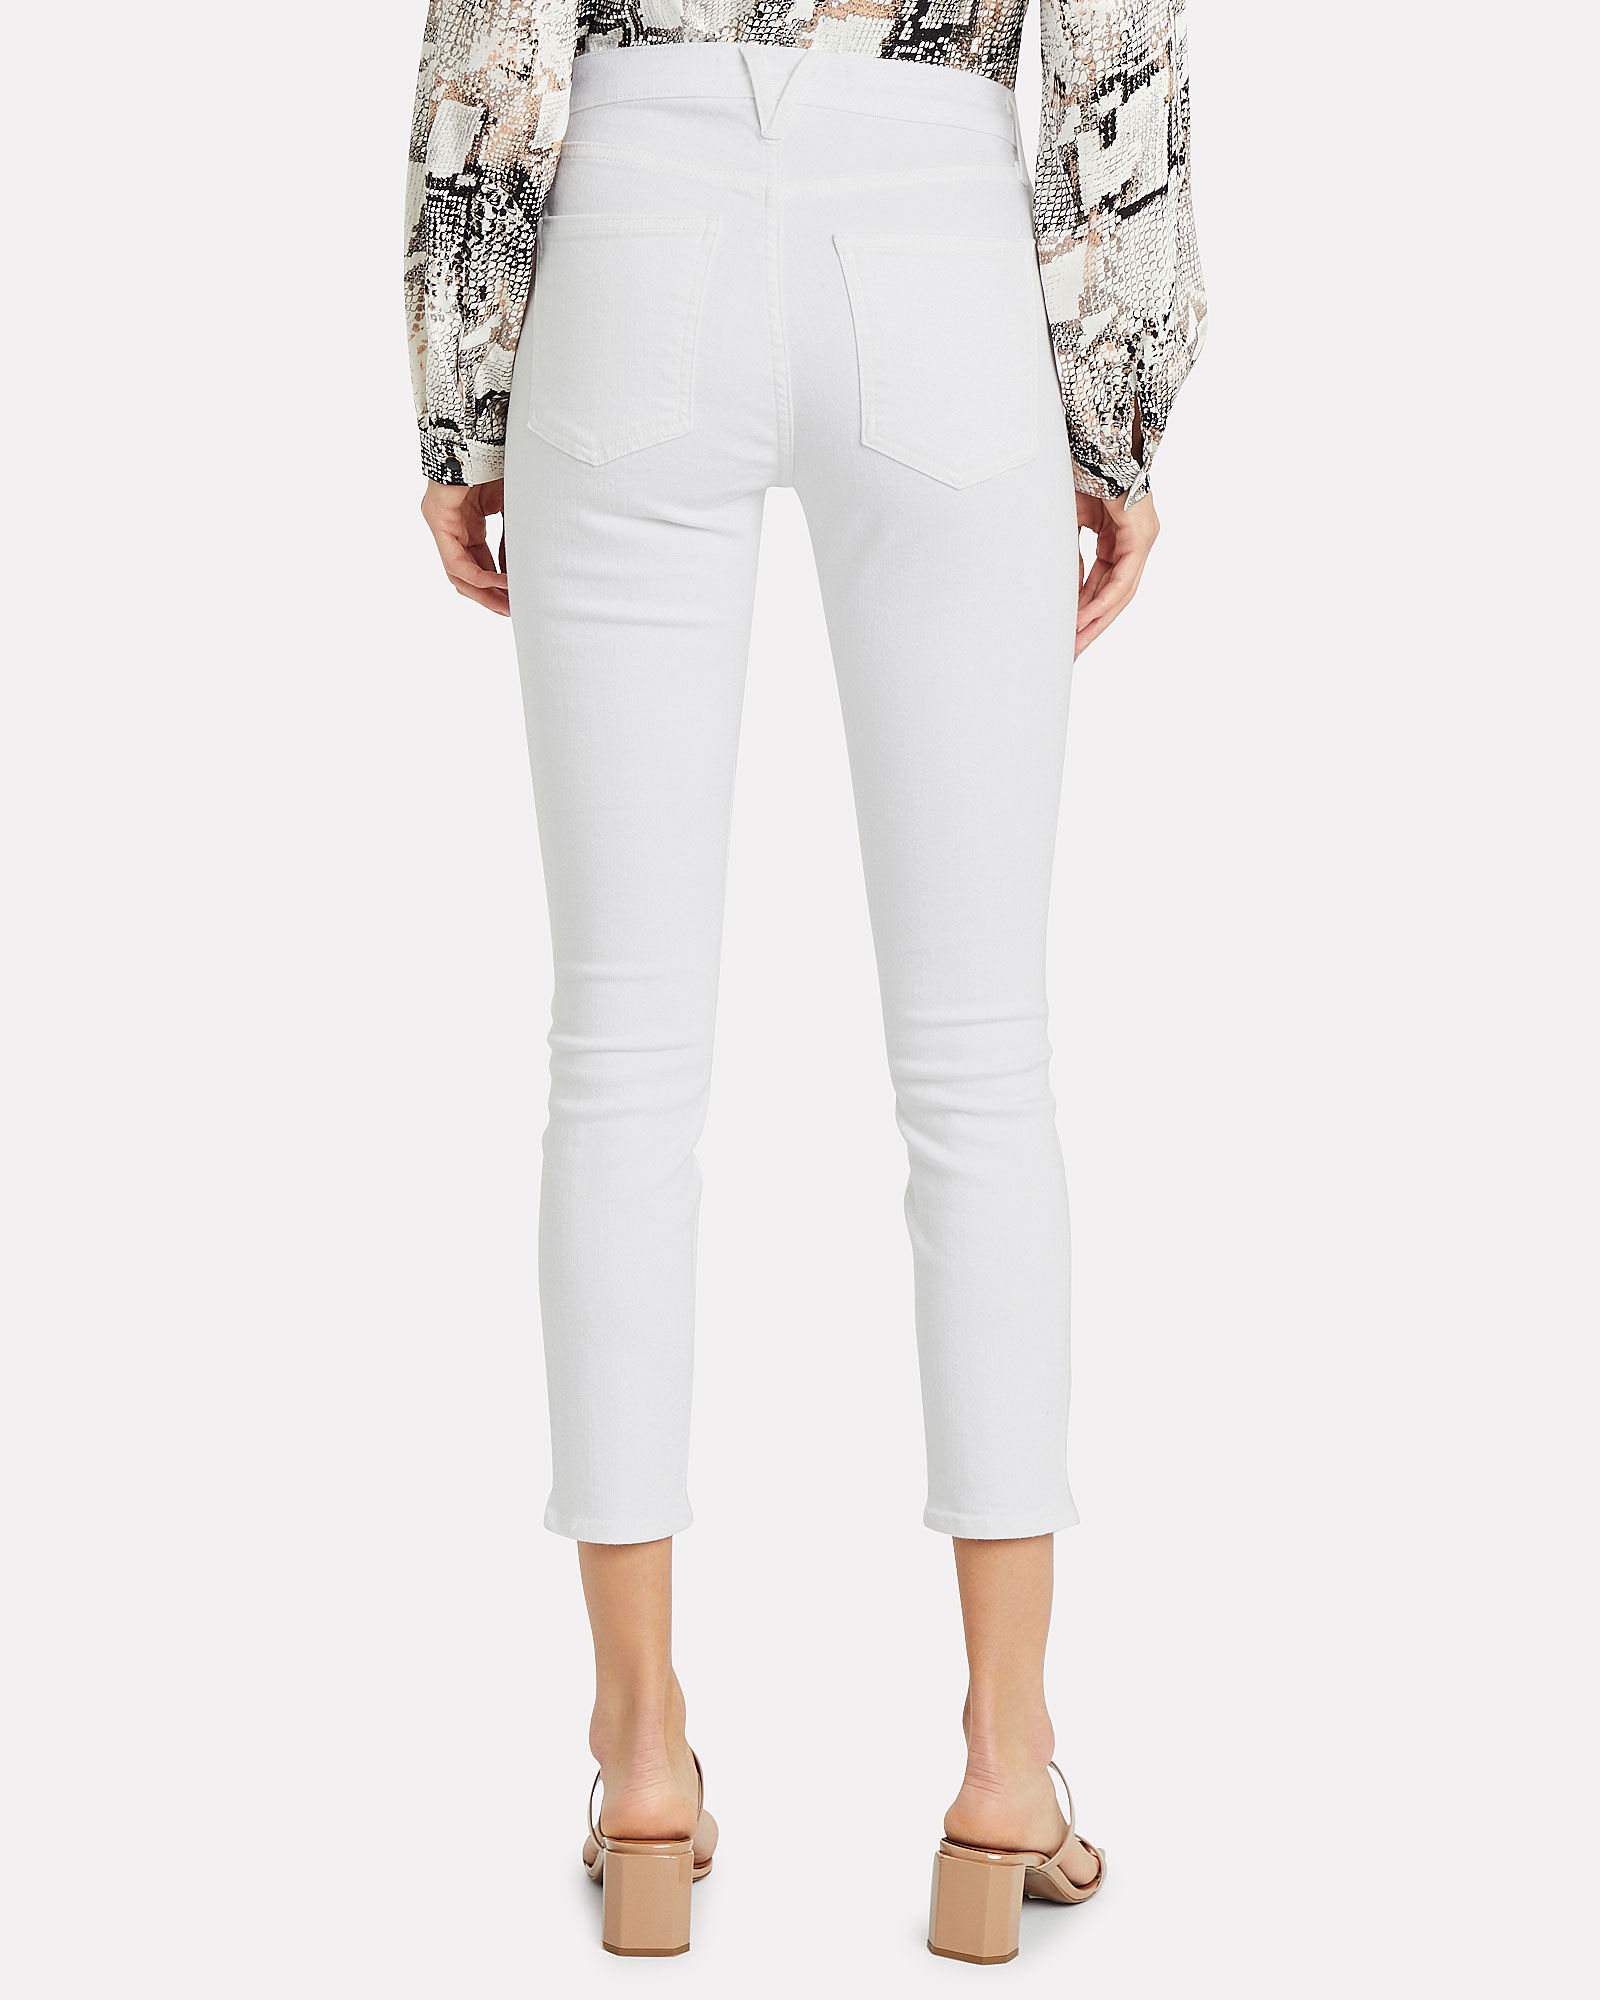 Debbie High-Rise Skinny Jeans, WHITE DENIM, hi-res